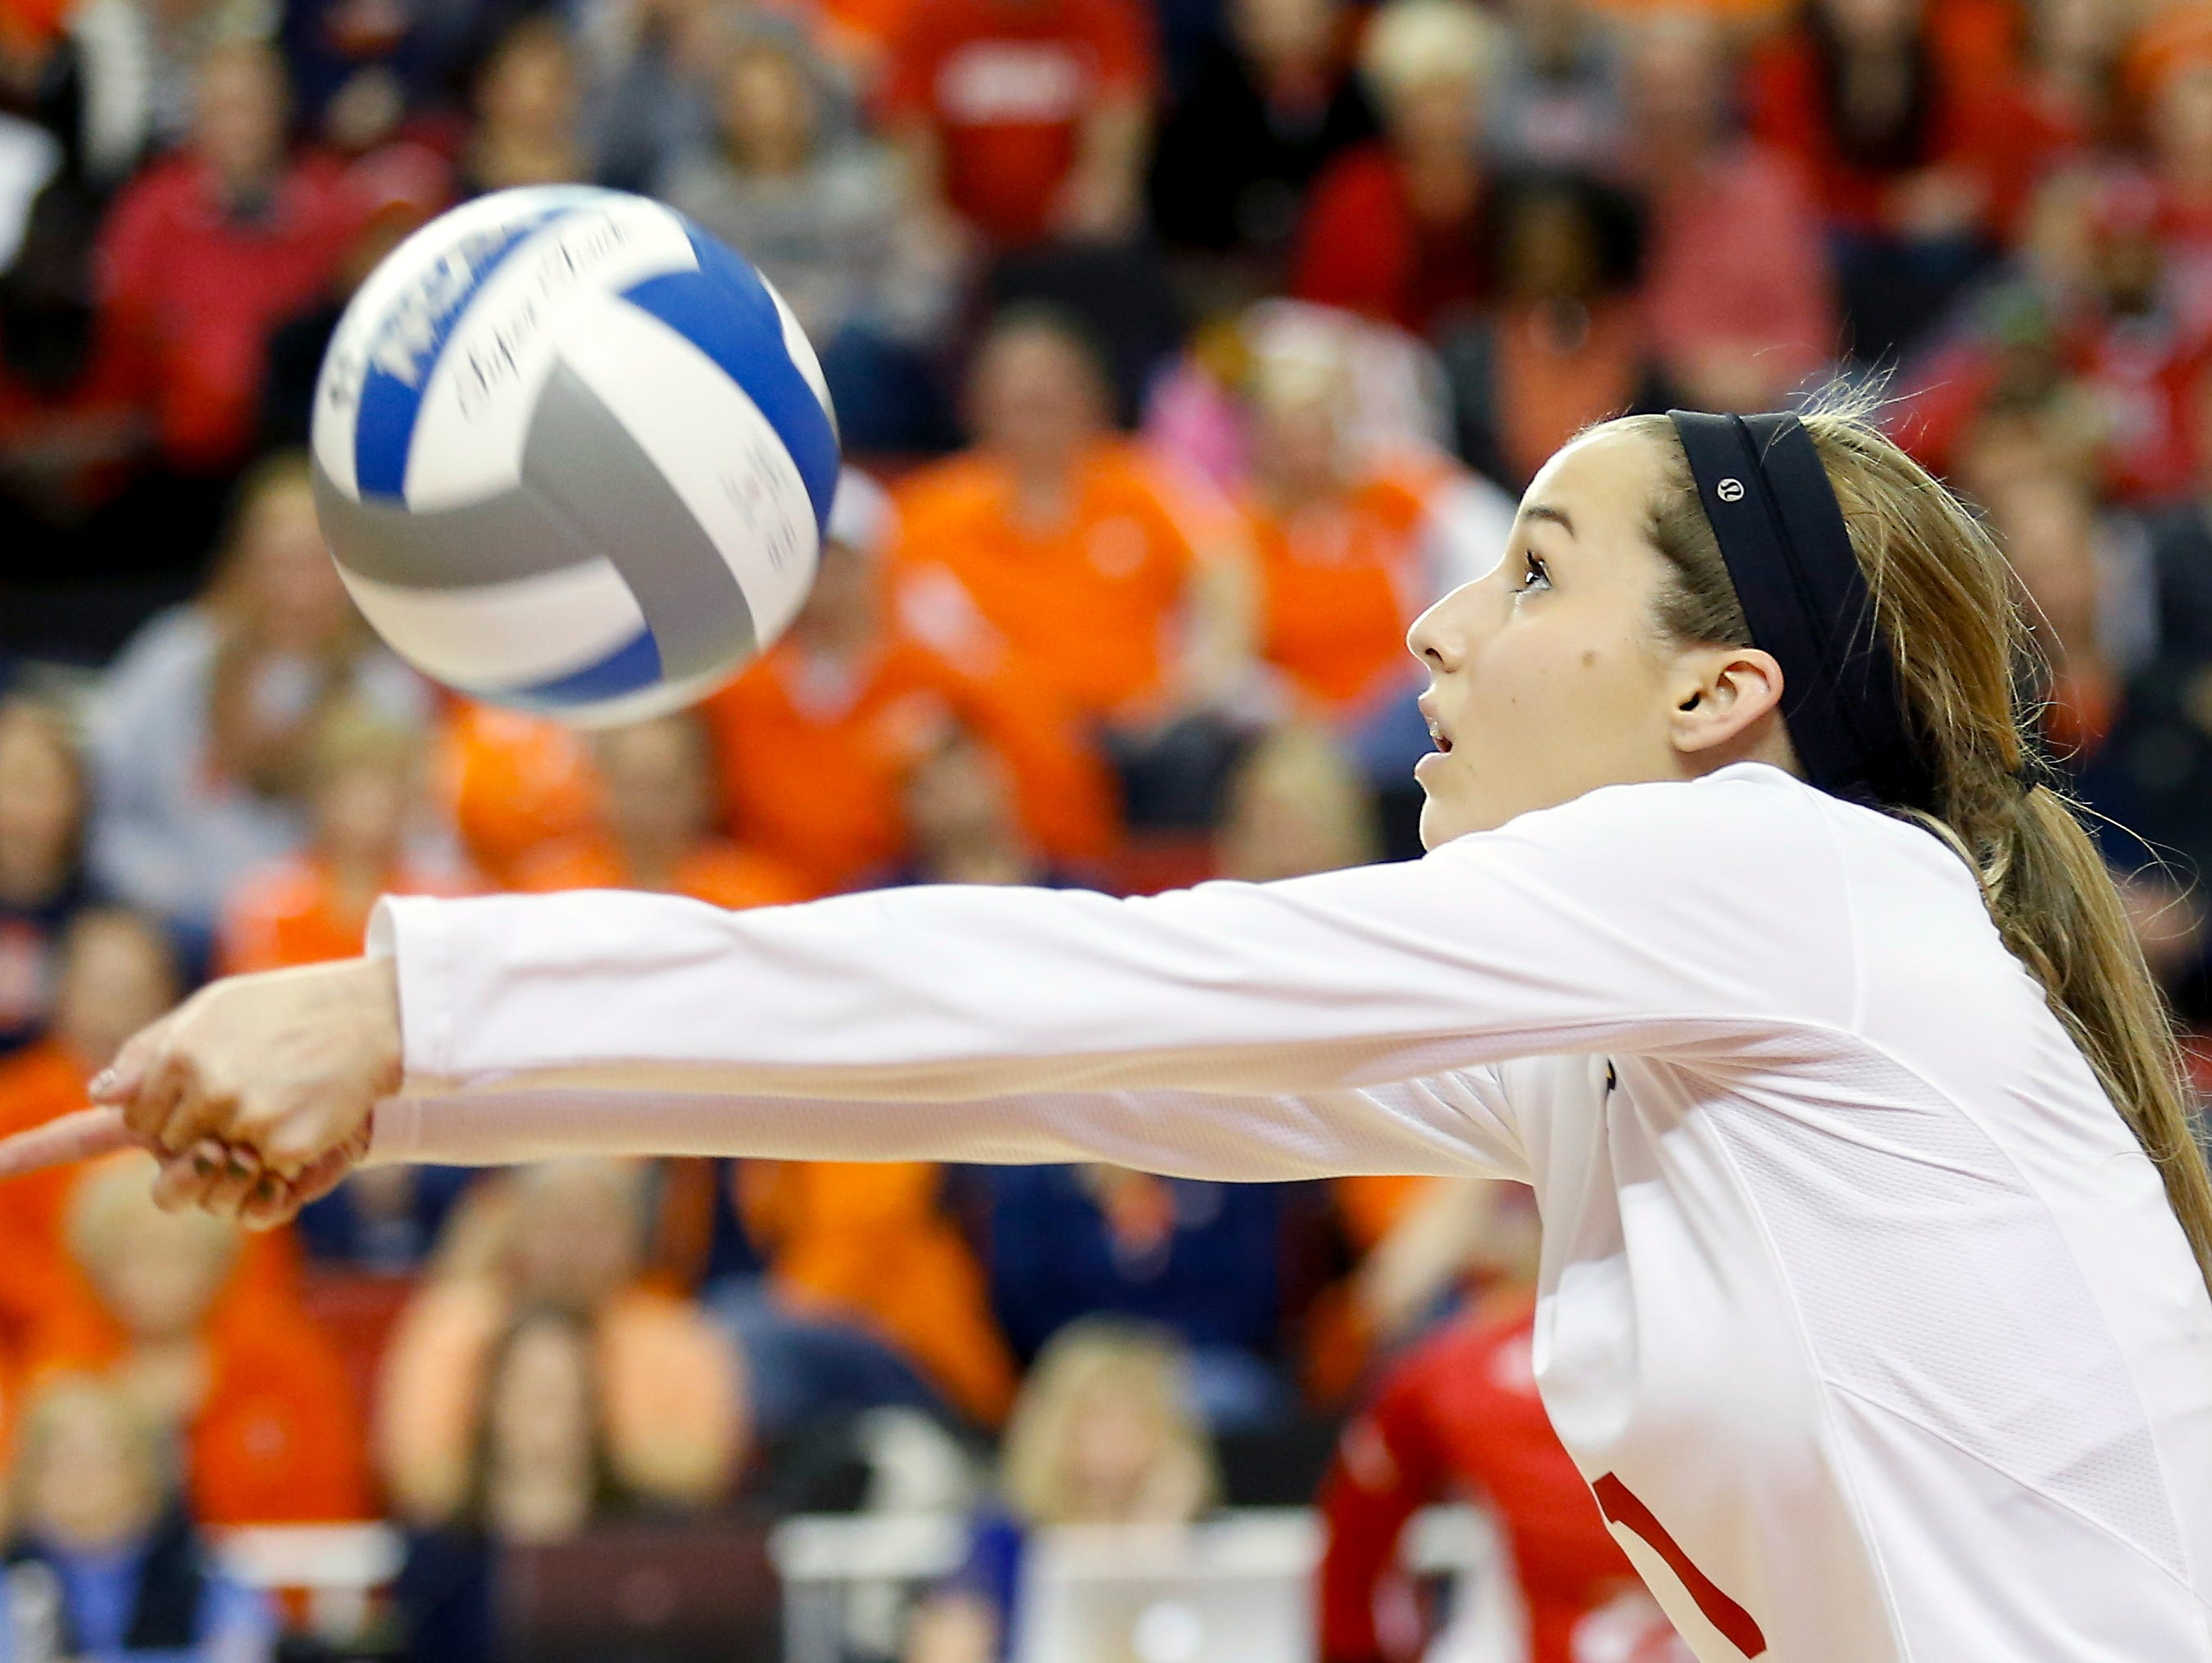 Louisville's Molly Sauer with the dig. Dec. 5, 2015